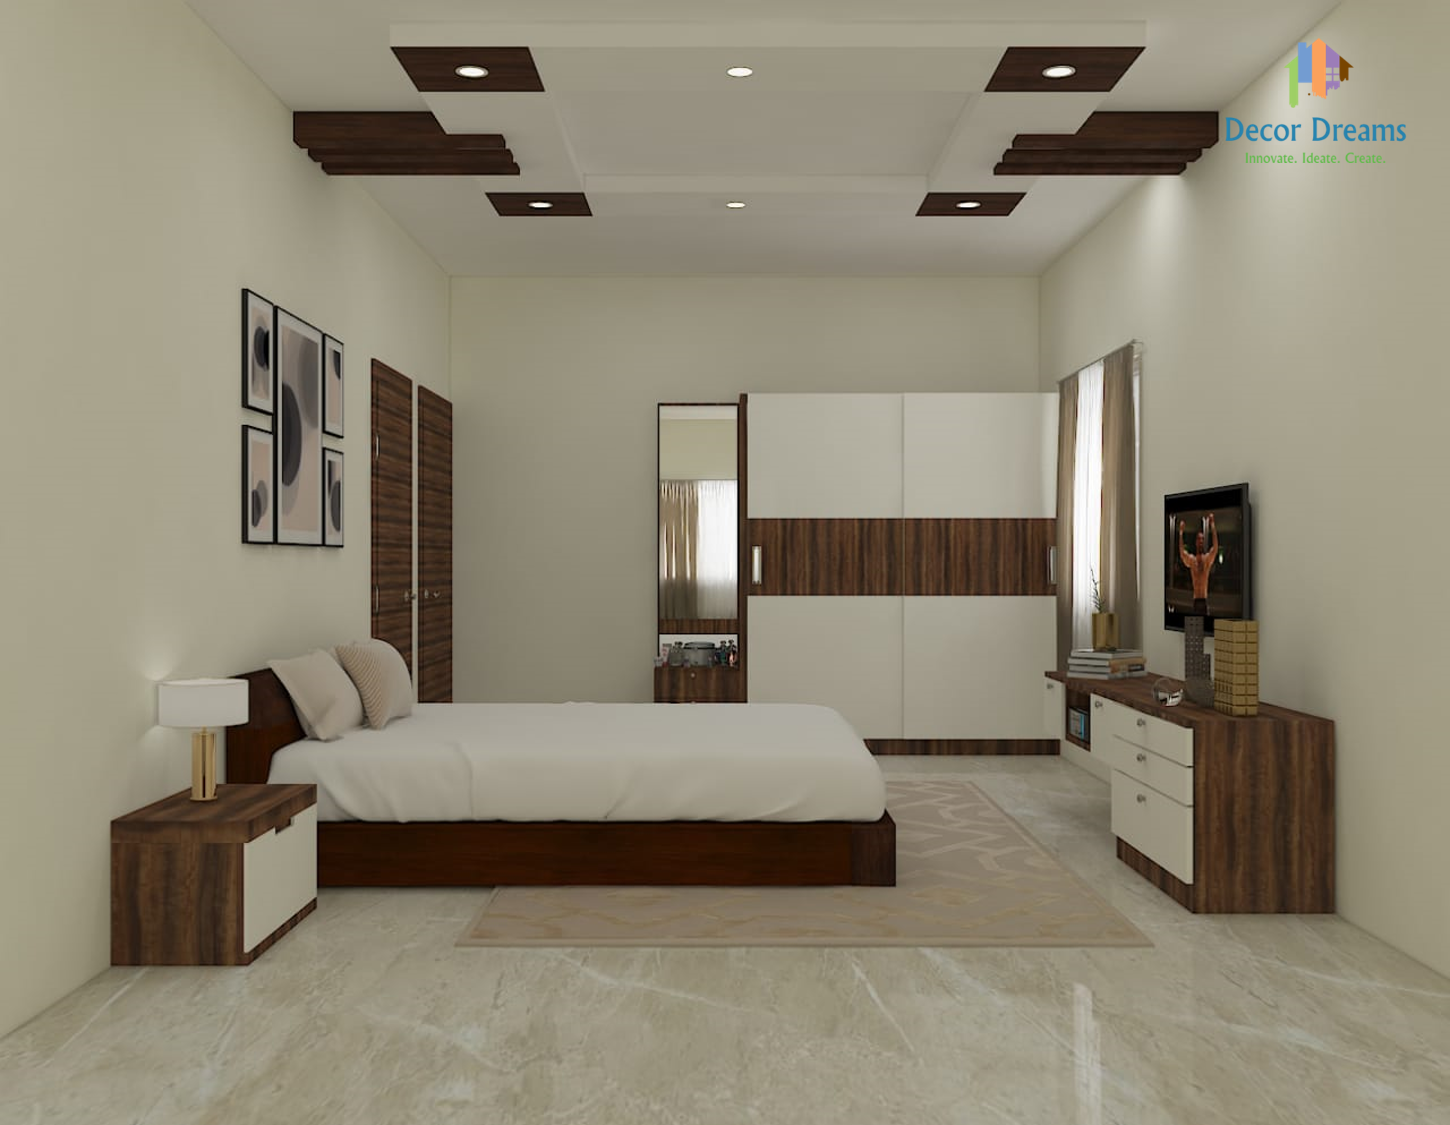 Bedroom | Bedroom false ceiling design, Ceiling design ...